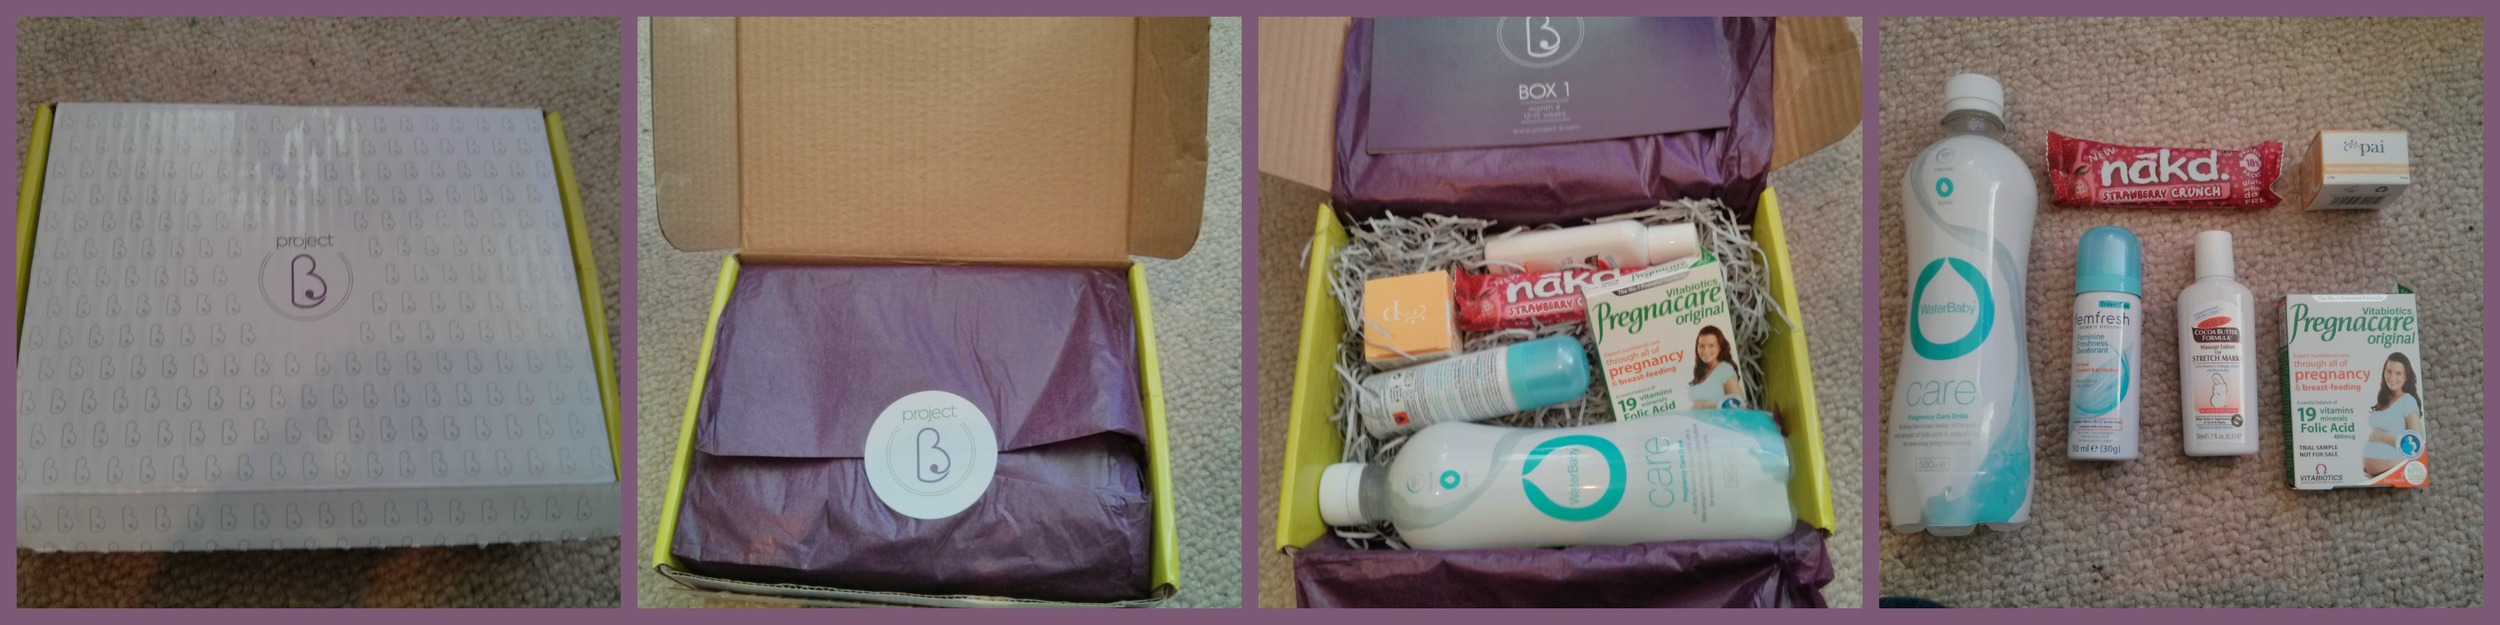 Project B - Pregnancy Wellbeing Boxes Review